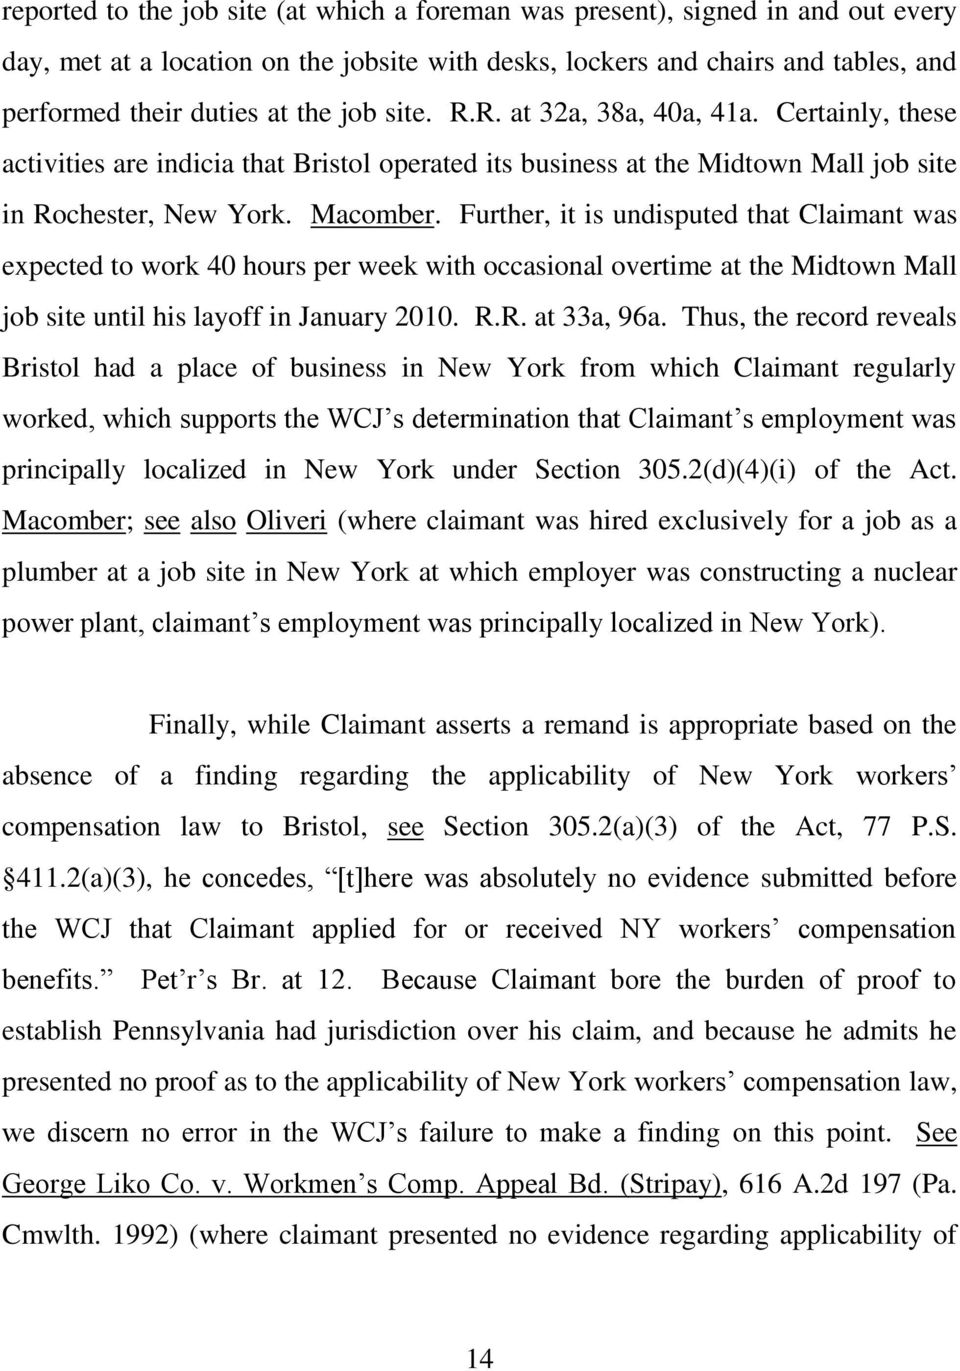 Further, it is undisputed that Claimant was expected to work 40 hours per week with occasional overtime at the Midtown Mall job site until his layoff in January 2010. R.R. at 33a, 96a.